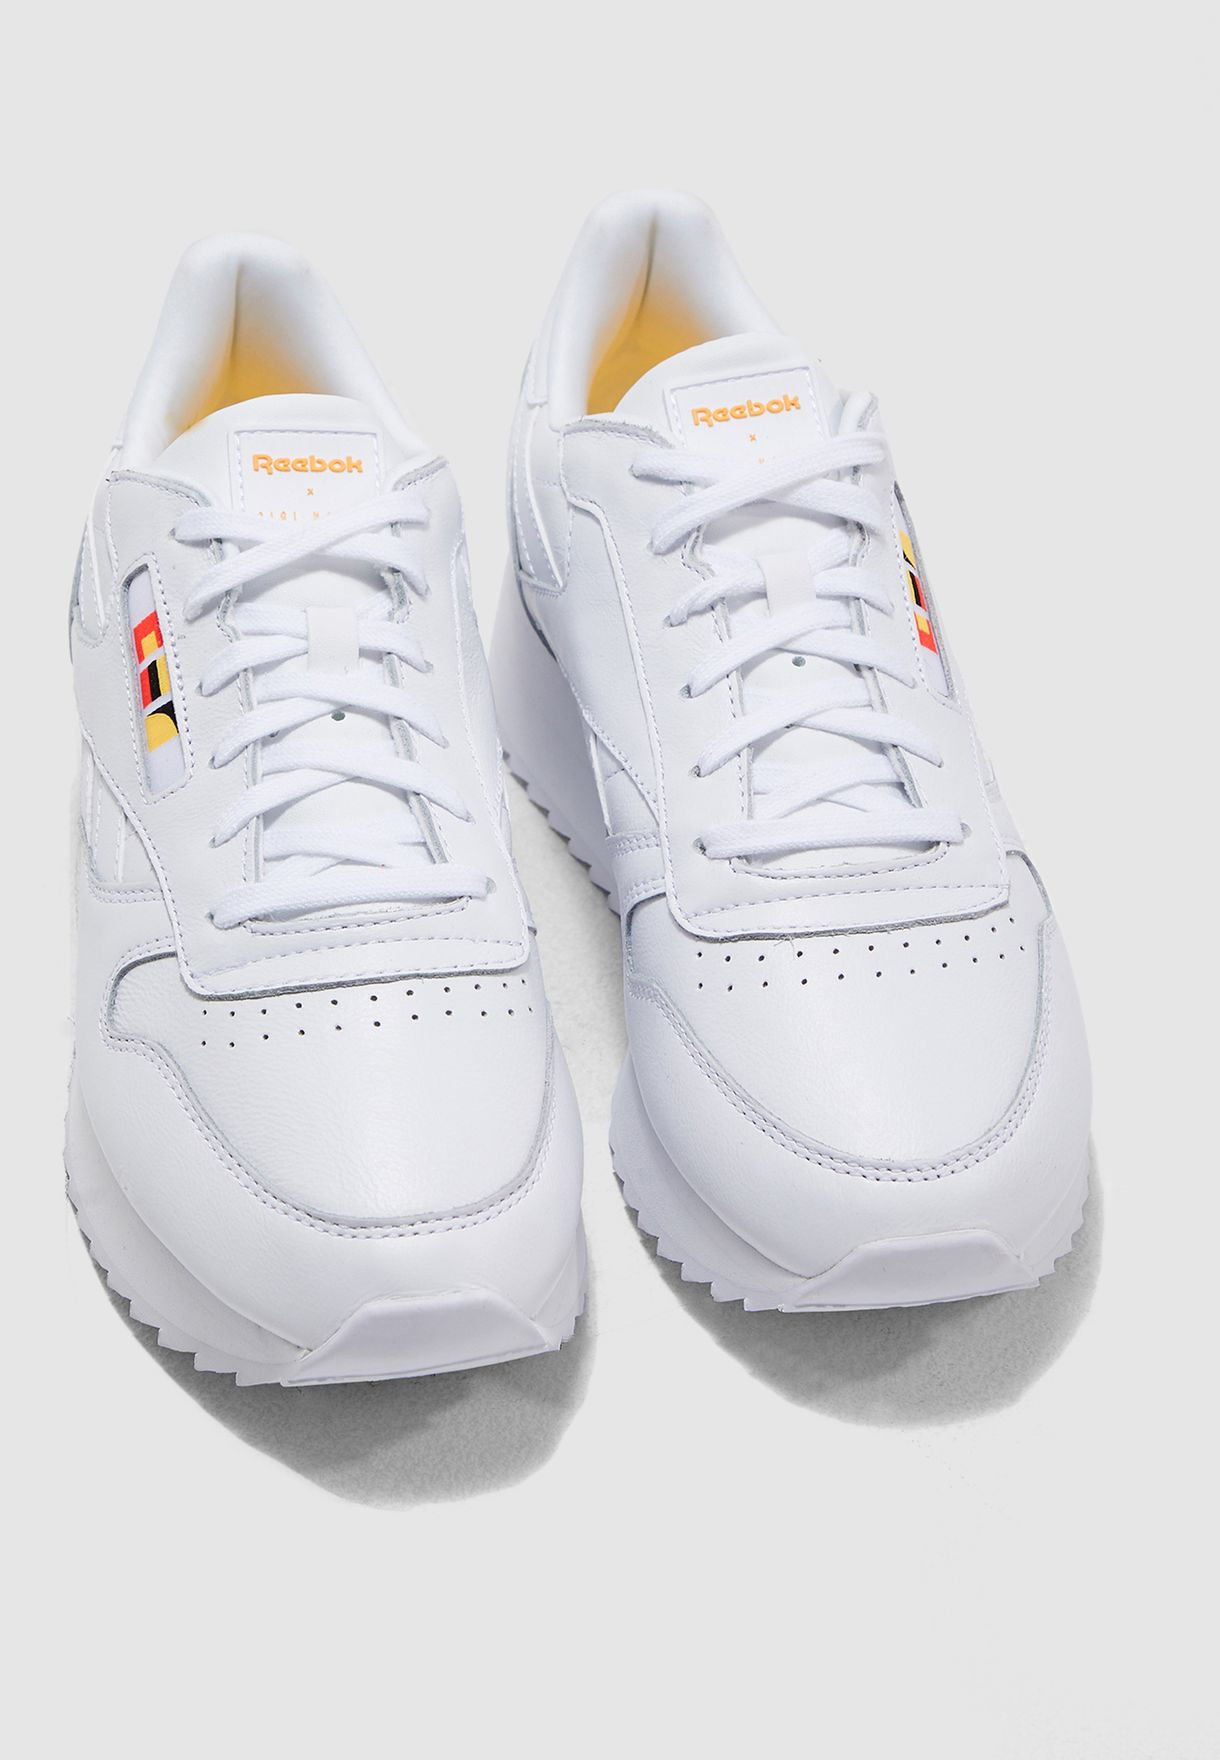 7ee6d1d430ac Shop Reebok white Gigi Hadid Classic Leather Double DV5391 for ...